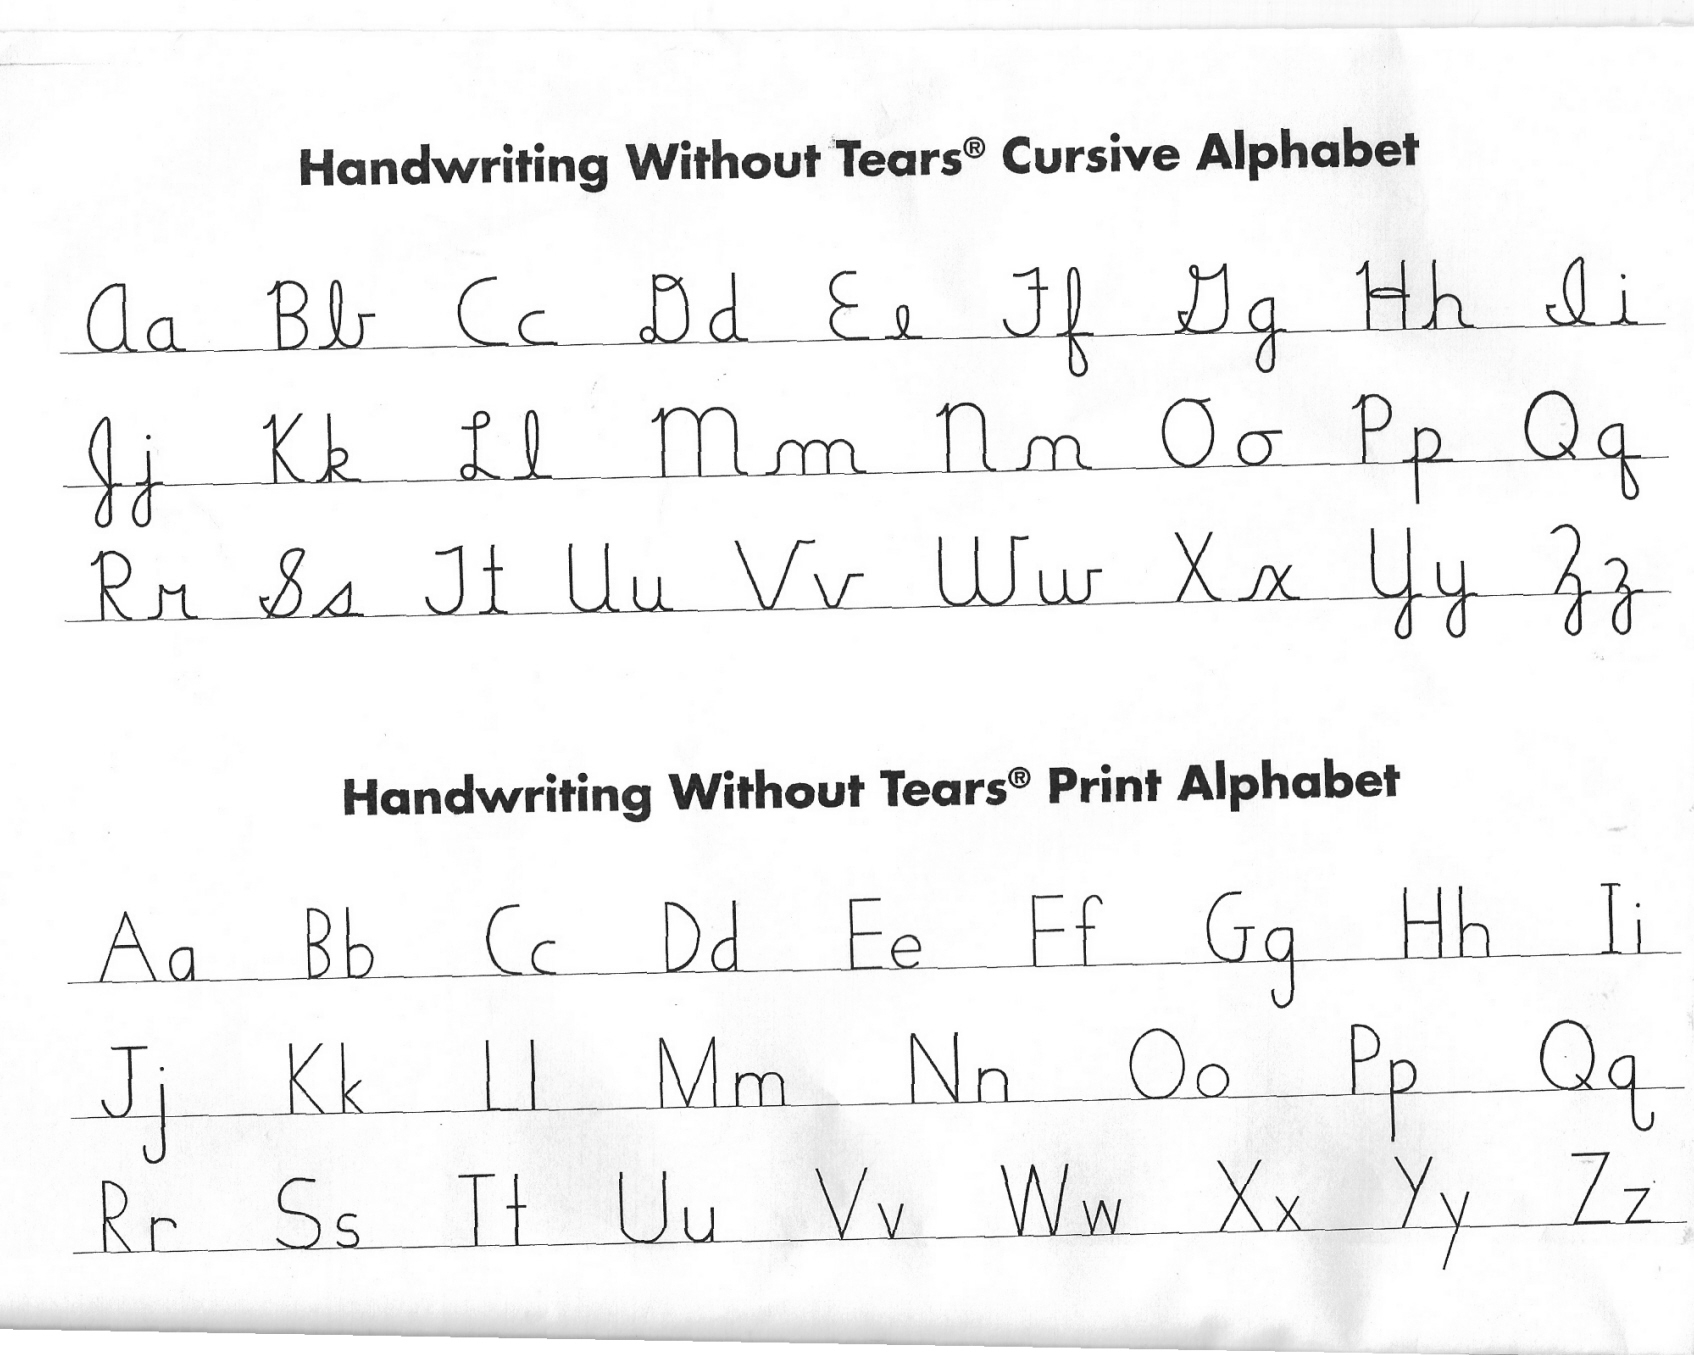 Free Worksheet Handwriting Without Tears Worksheets handwriting without tears template a the preschool corner made in program which our school uses